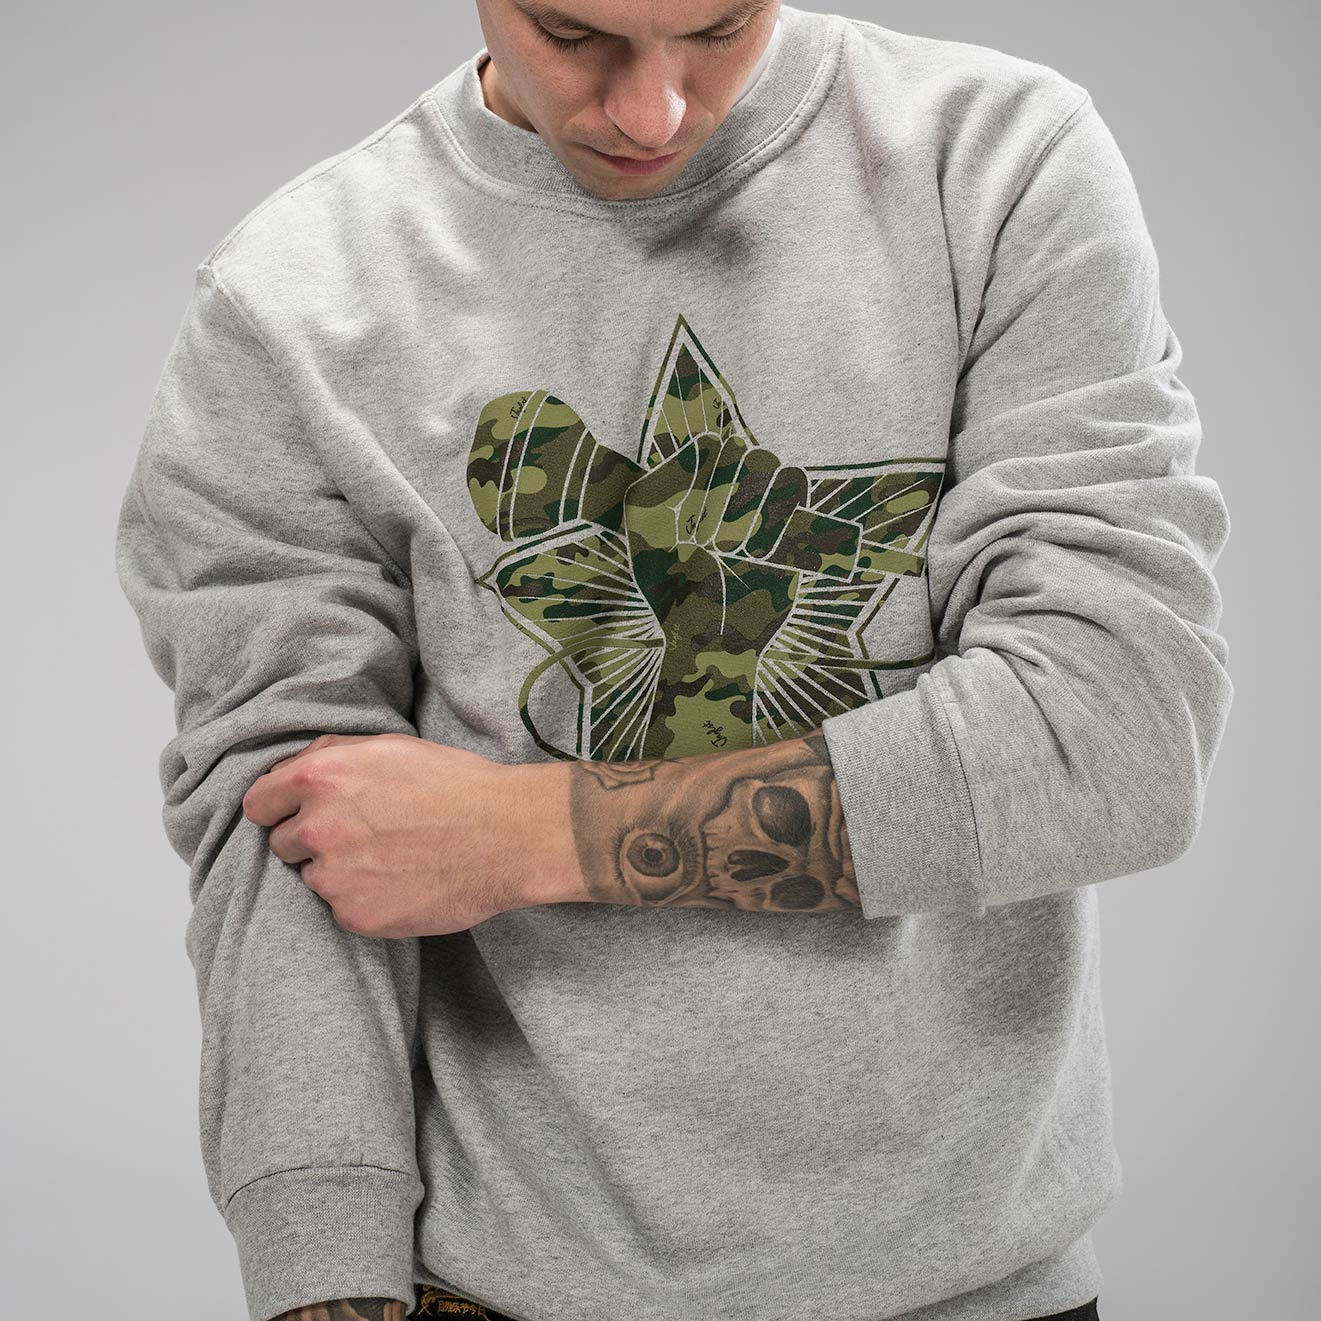 Grey Junglist Clothing Revolution Sweatshirt